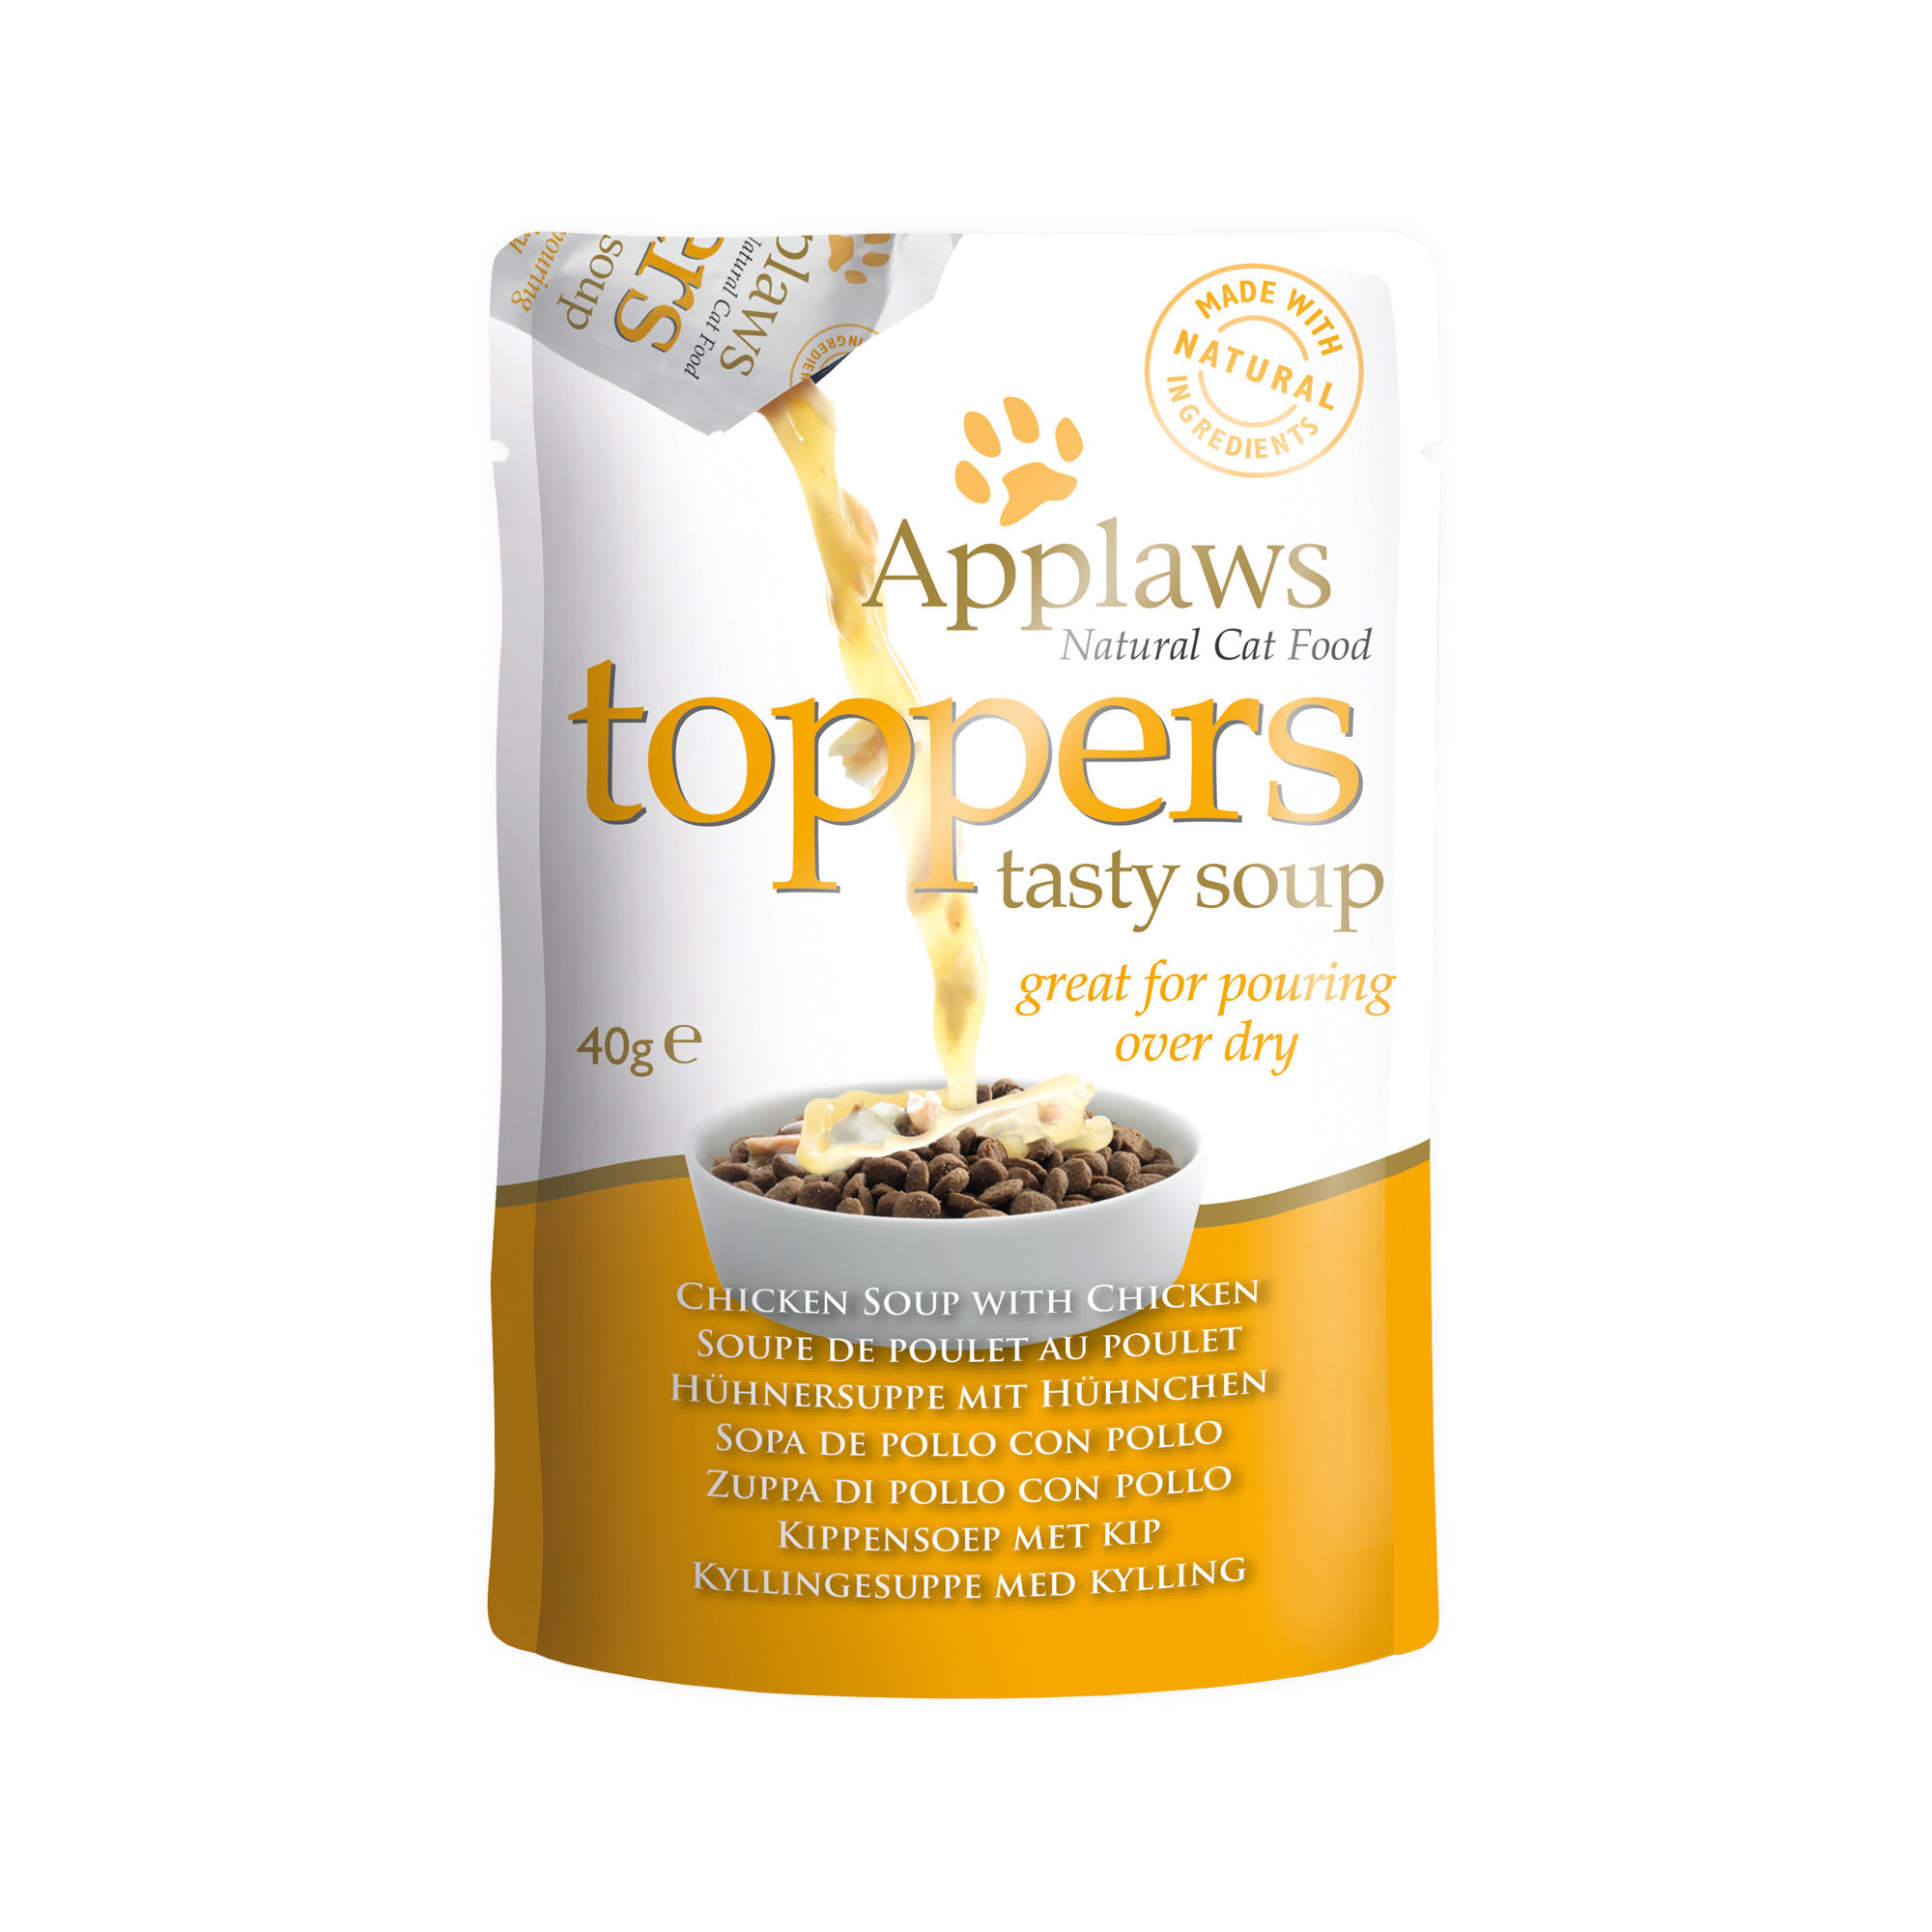 Applaws Toppers Tasty Soup - Poulet - Sachet - 3 x 40 g